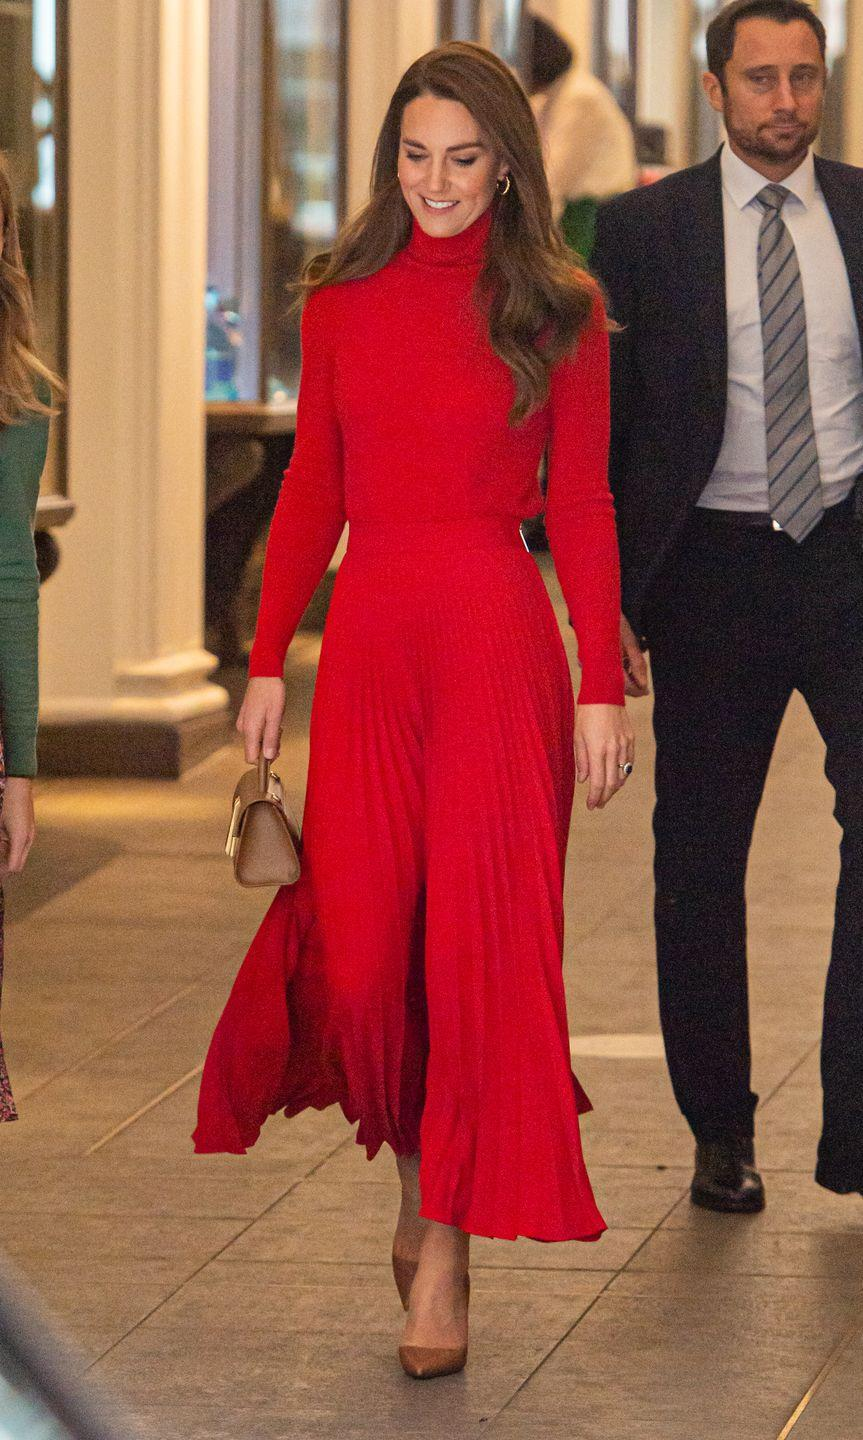 """<p>Kate Middleton sported an elegant, monochrome red outfit to attend The Forward Trust's """"Taking Action on Addiction"""" campaign, which aims to help individuals overcome addiction. She accessorized a sleek turtleneck and pleated skirt with a tan <a href=""""https://go.redirectingat.com?id=74968X1596630&url=https%3A%2F%2Fwww.demellierlondon.com%2Fthe-nano-montreal.html&sref=https%3A%2F%2Fwww.townandcountrymag.com%2Fstyle%2Ffashion-trends%2Fnews%2Fg1633%2Fkate-middleton-fashion%2F"""" rel=""""nofollow noopener"""" target=""""_blank"""" data-ylk=""""slk:DeMellier London"""" class=""""link rapid-noclick-resp"""">DeMellier London </a>purse and pointed stilettos.</p>"""